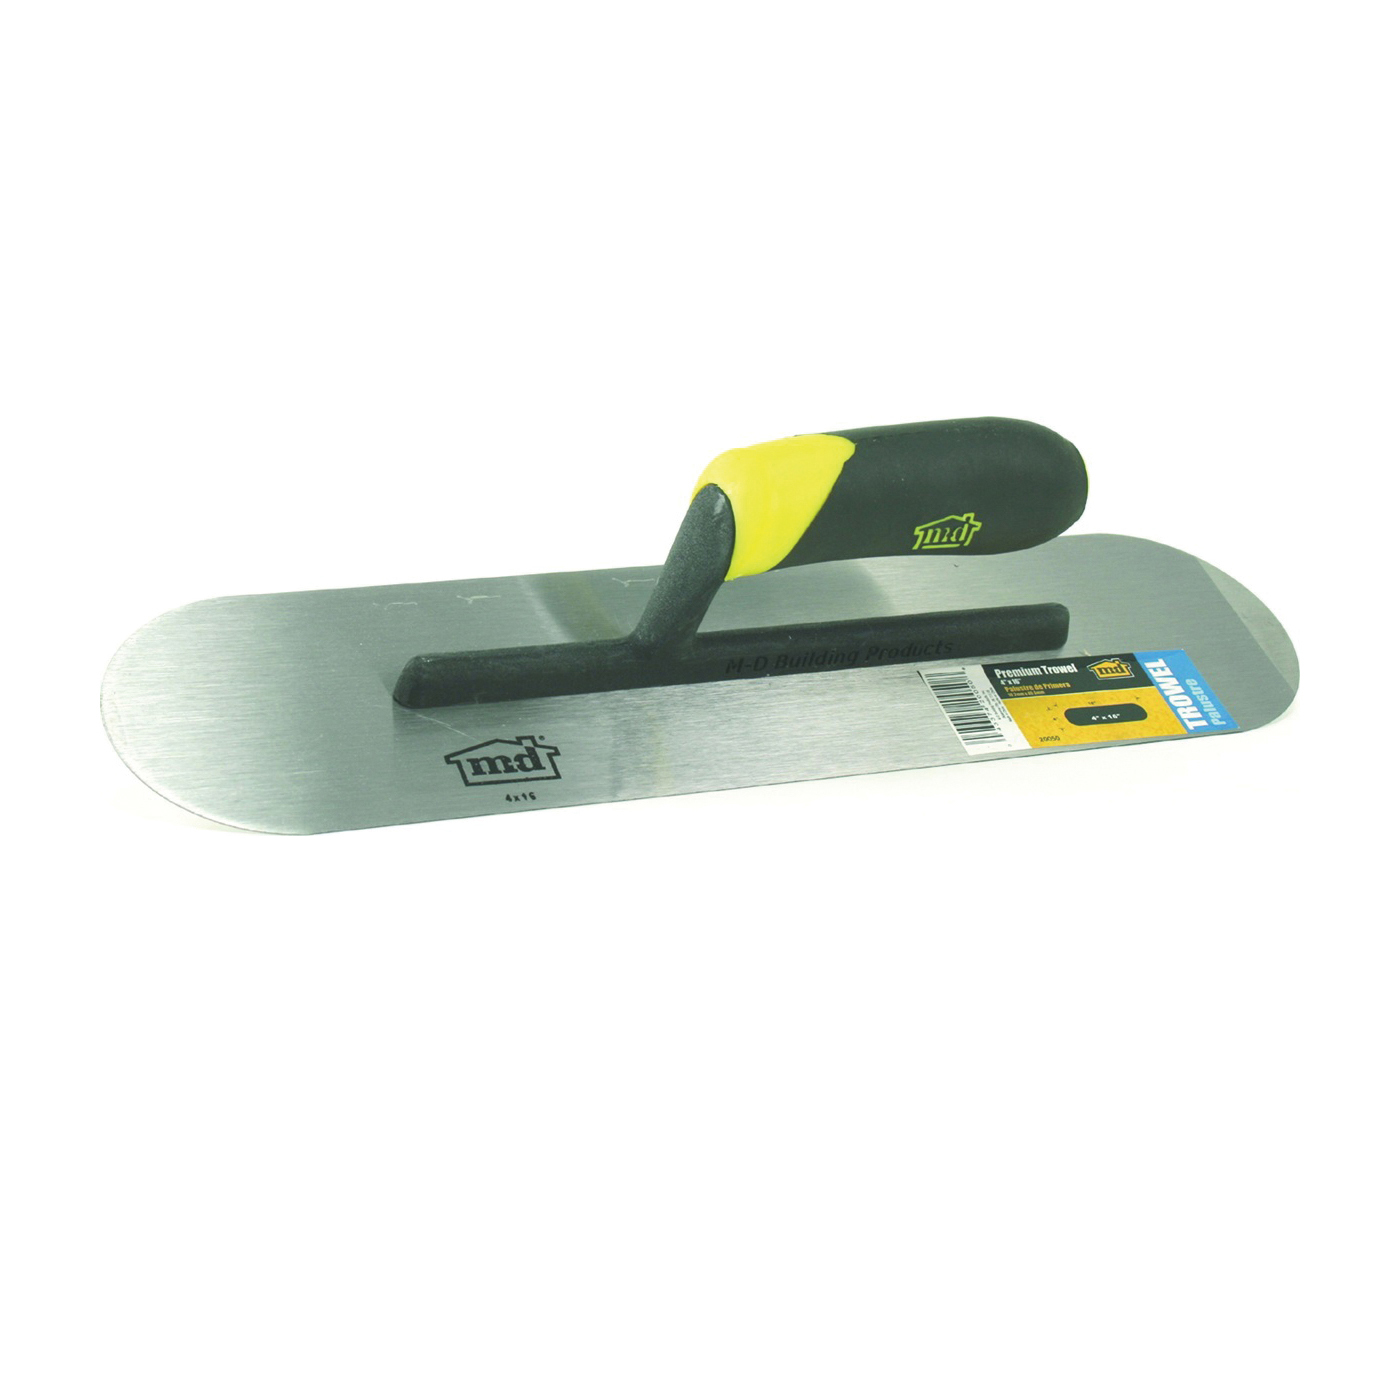 Picture of M-D 20050 Flat Pool Finishing Trowel, Hardened Steel Blade, Comfort Grip Handle, Thermoplastic Handle, 4 in OAW